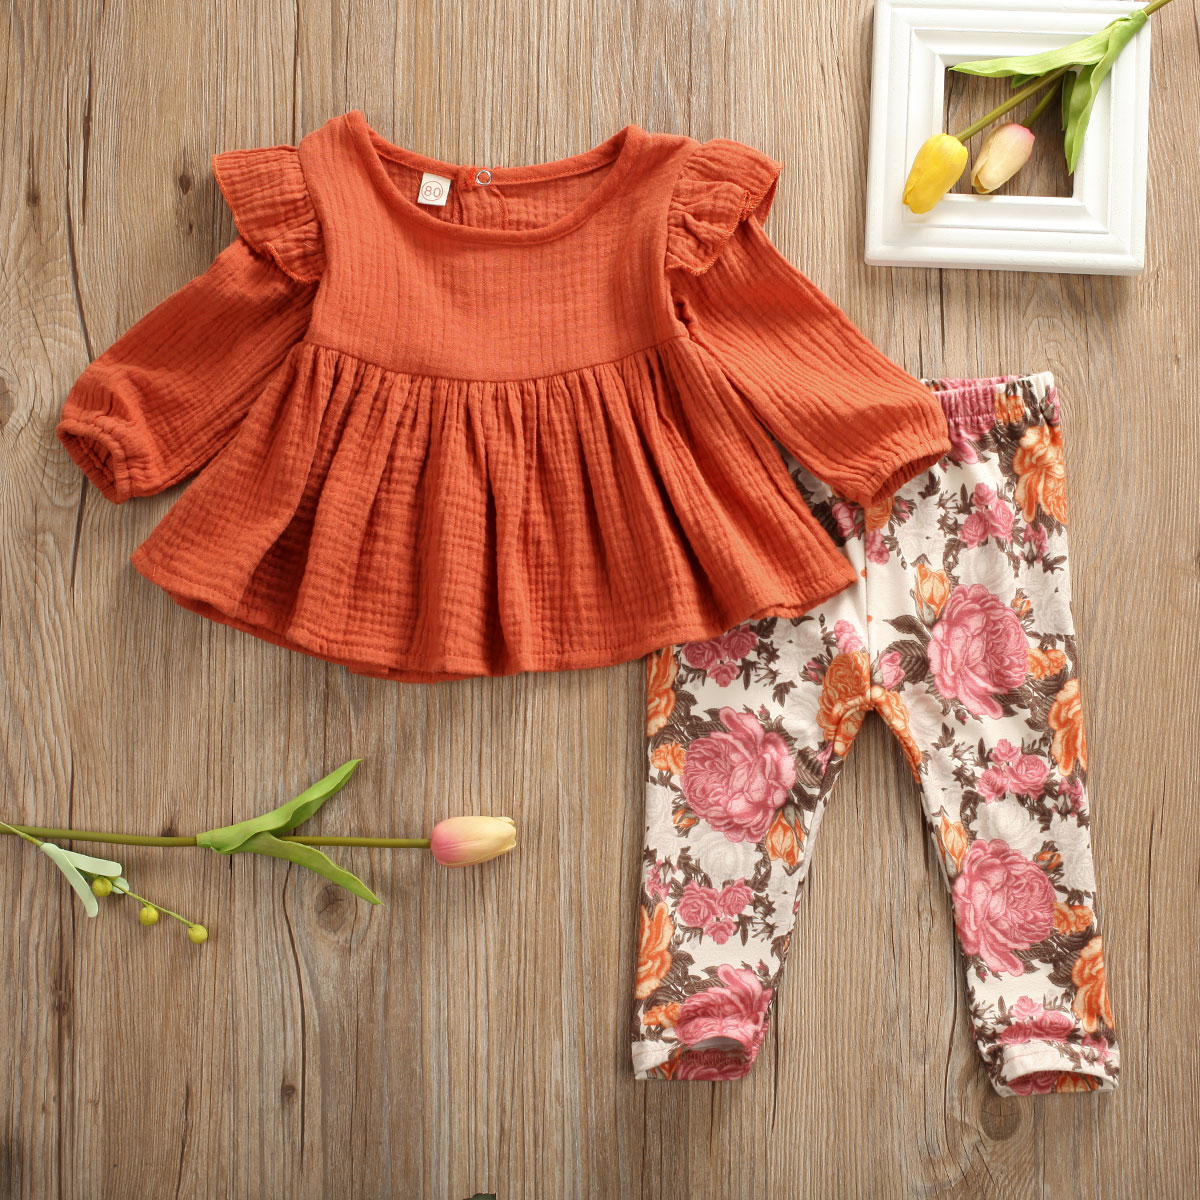 Pudcoco Toddler Baby Girl Clothes Solid Color Knitted Cotton Ruffle Tops Flower Print Long Pants 2Pcs Outfits Cotton Clothes